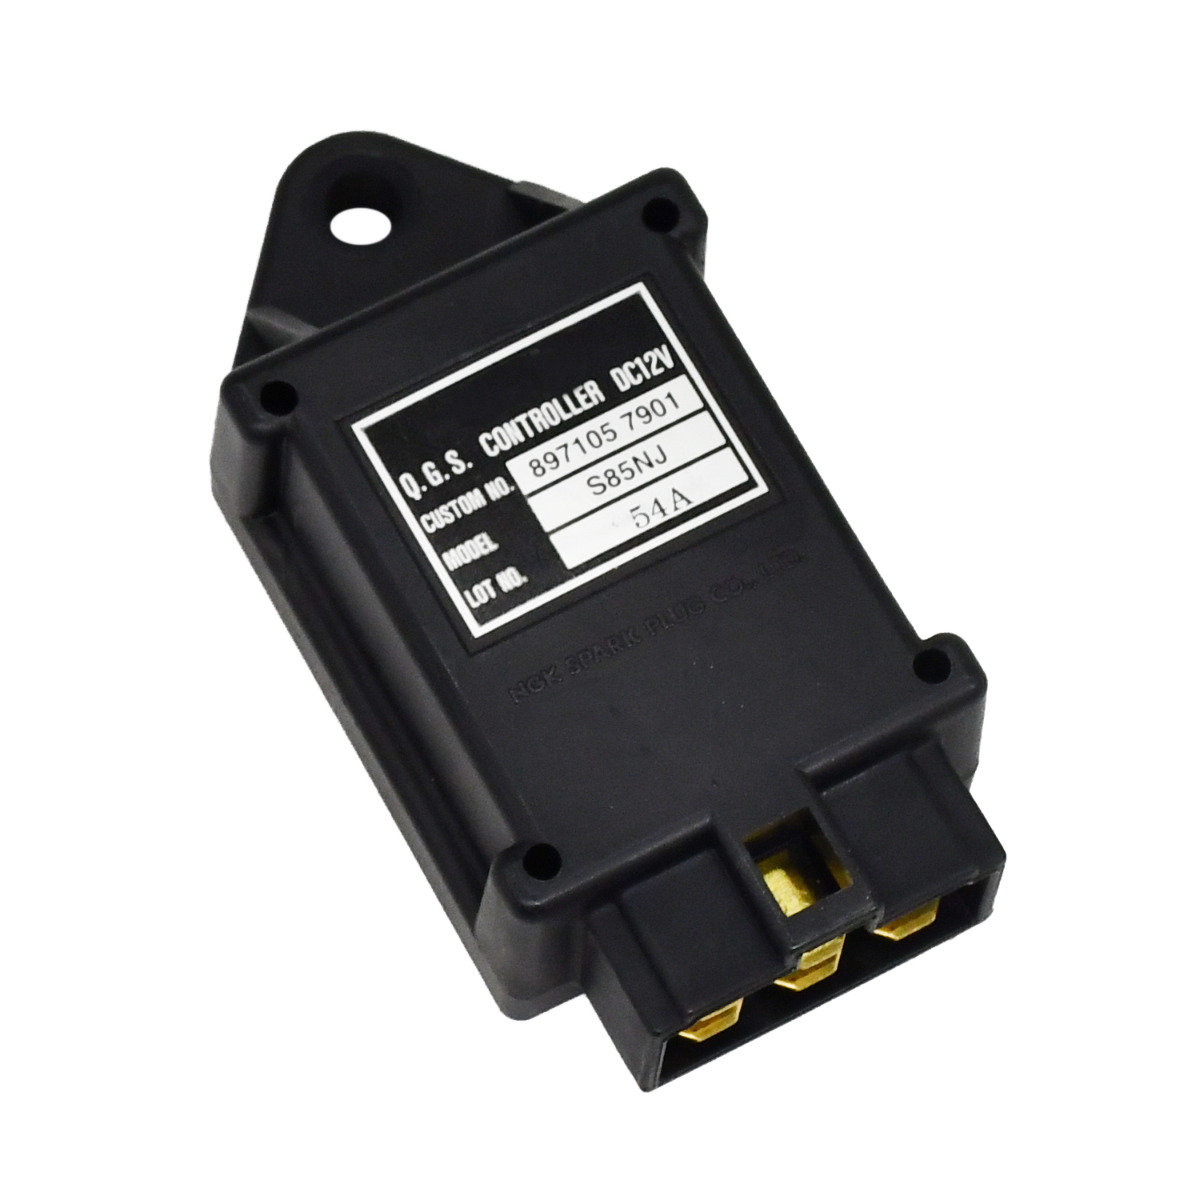 Timer Relay Controller 16415-65660 12V 6PINS Compatible with Kubota Engine D902 D905 D1005 V1305 V1505 L2900DT L3010DT L3300DT L3600DT